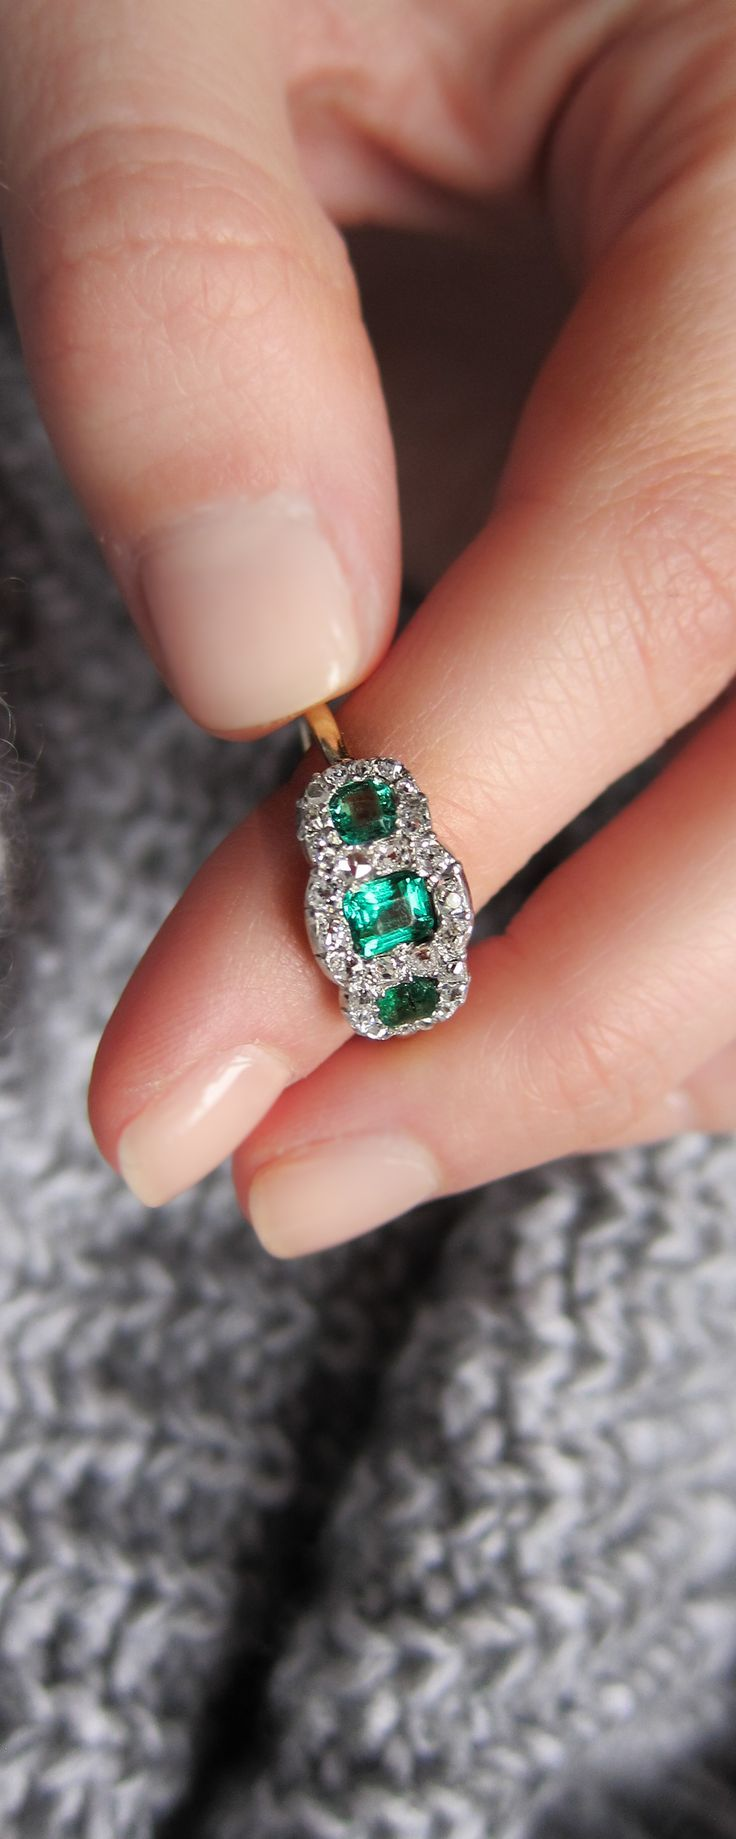 http://rubies.work/0850-ruby-pendant/ This three stone antique victorian ring is made in PLATINUM on gold with three perfectly green emeralds encircled by diamonds. This ring is classic french vintage, a lovely alternative engagement ring or an everyday piece either way it's a stunner.